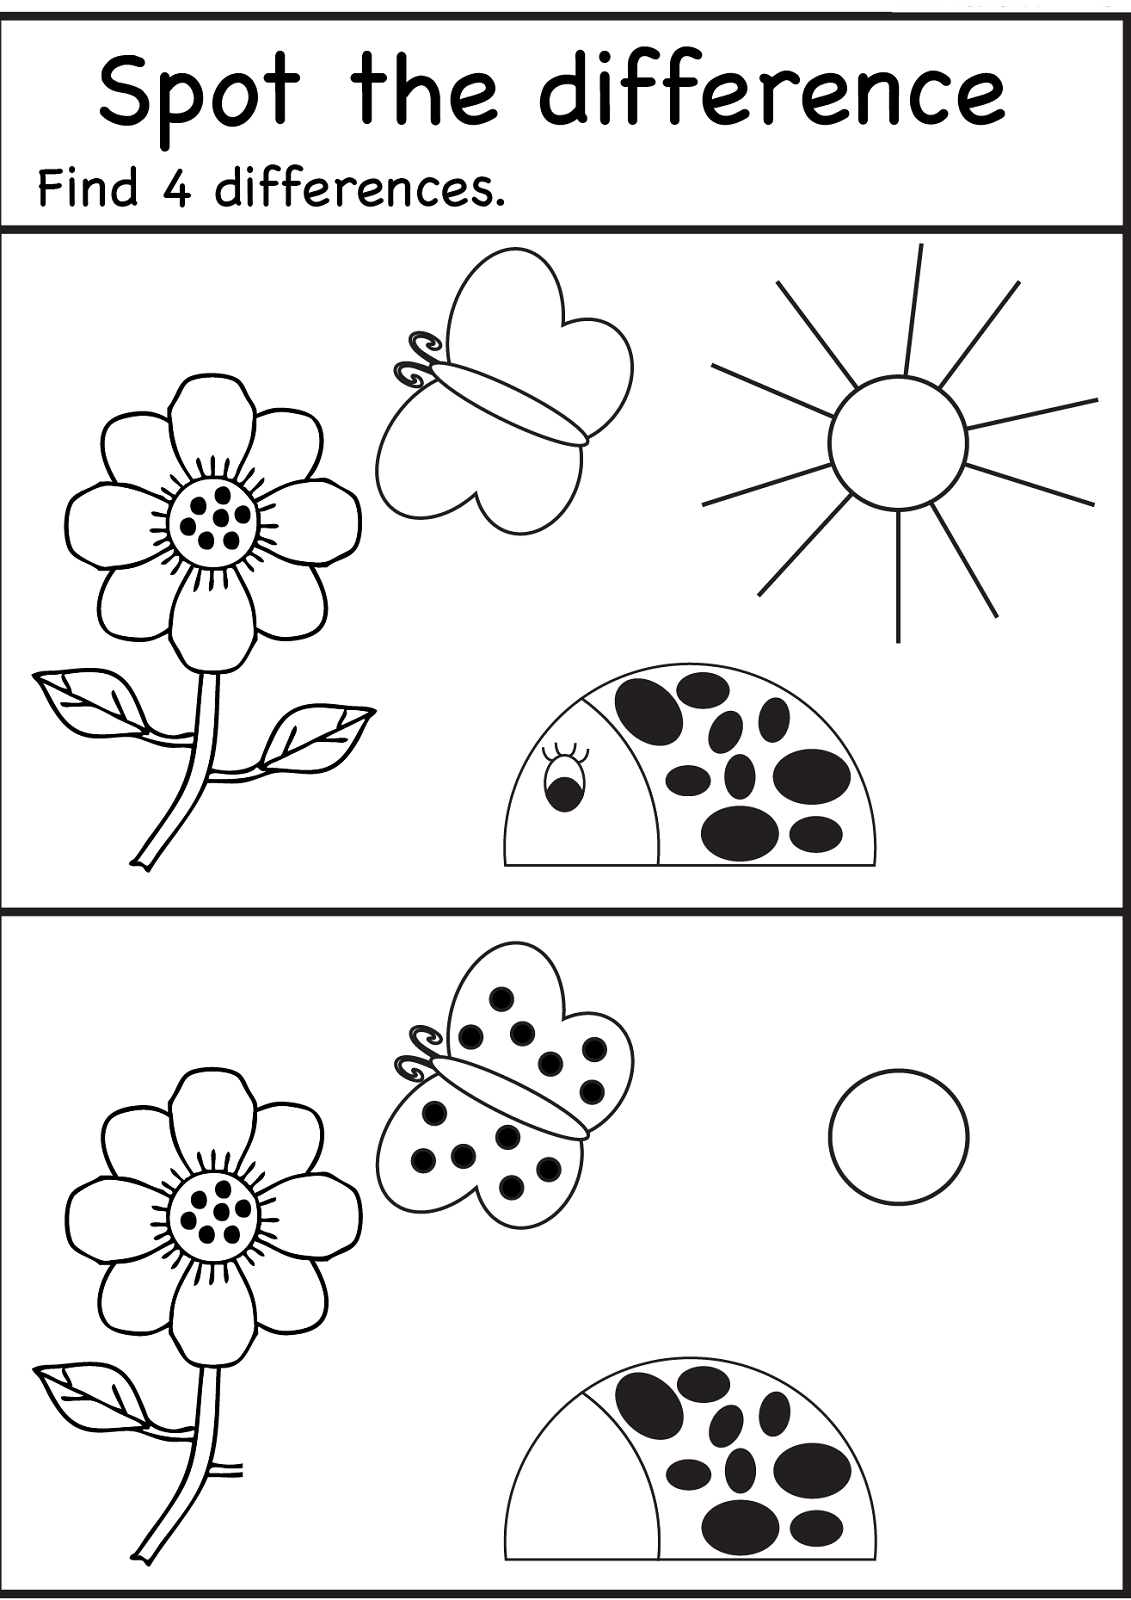 Spot The Difference Worksheets for Kids | Worksheets for ...